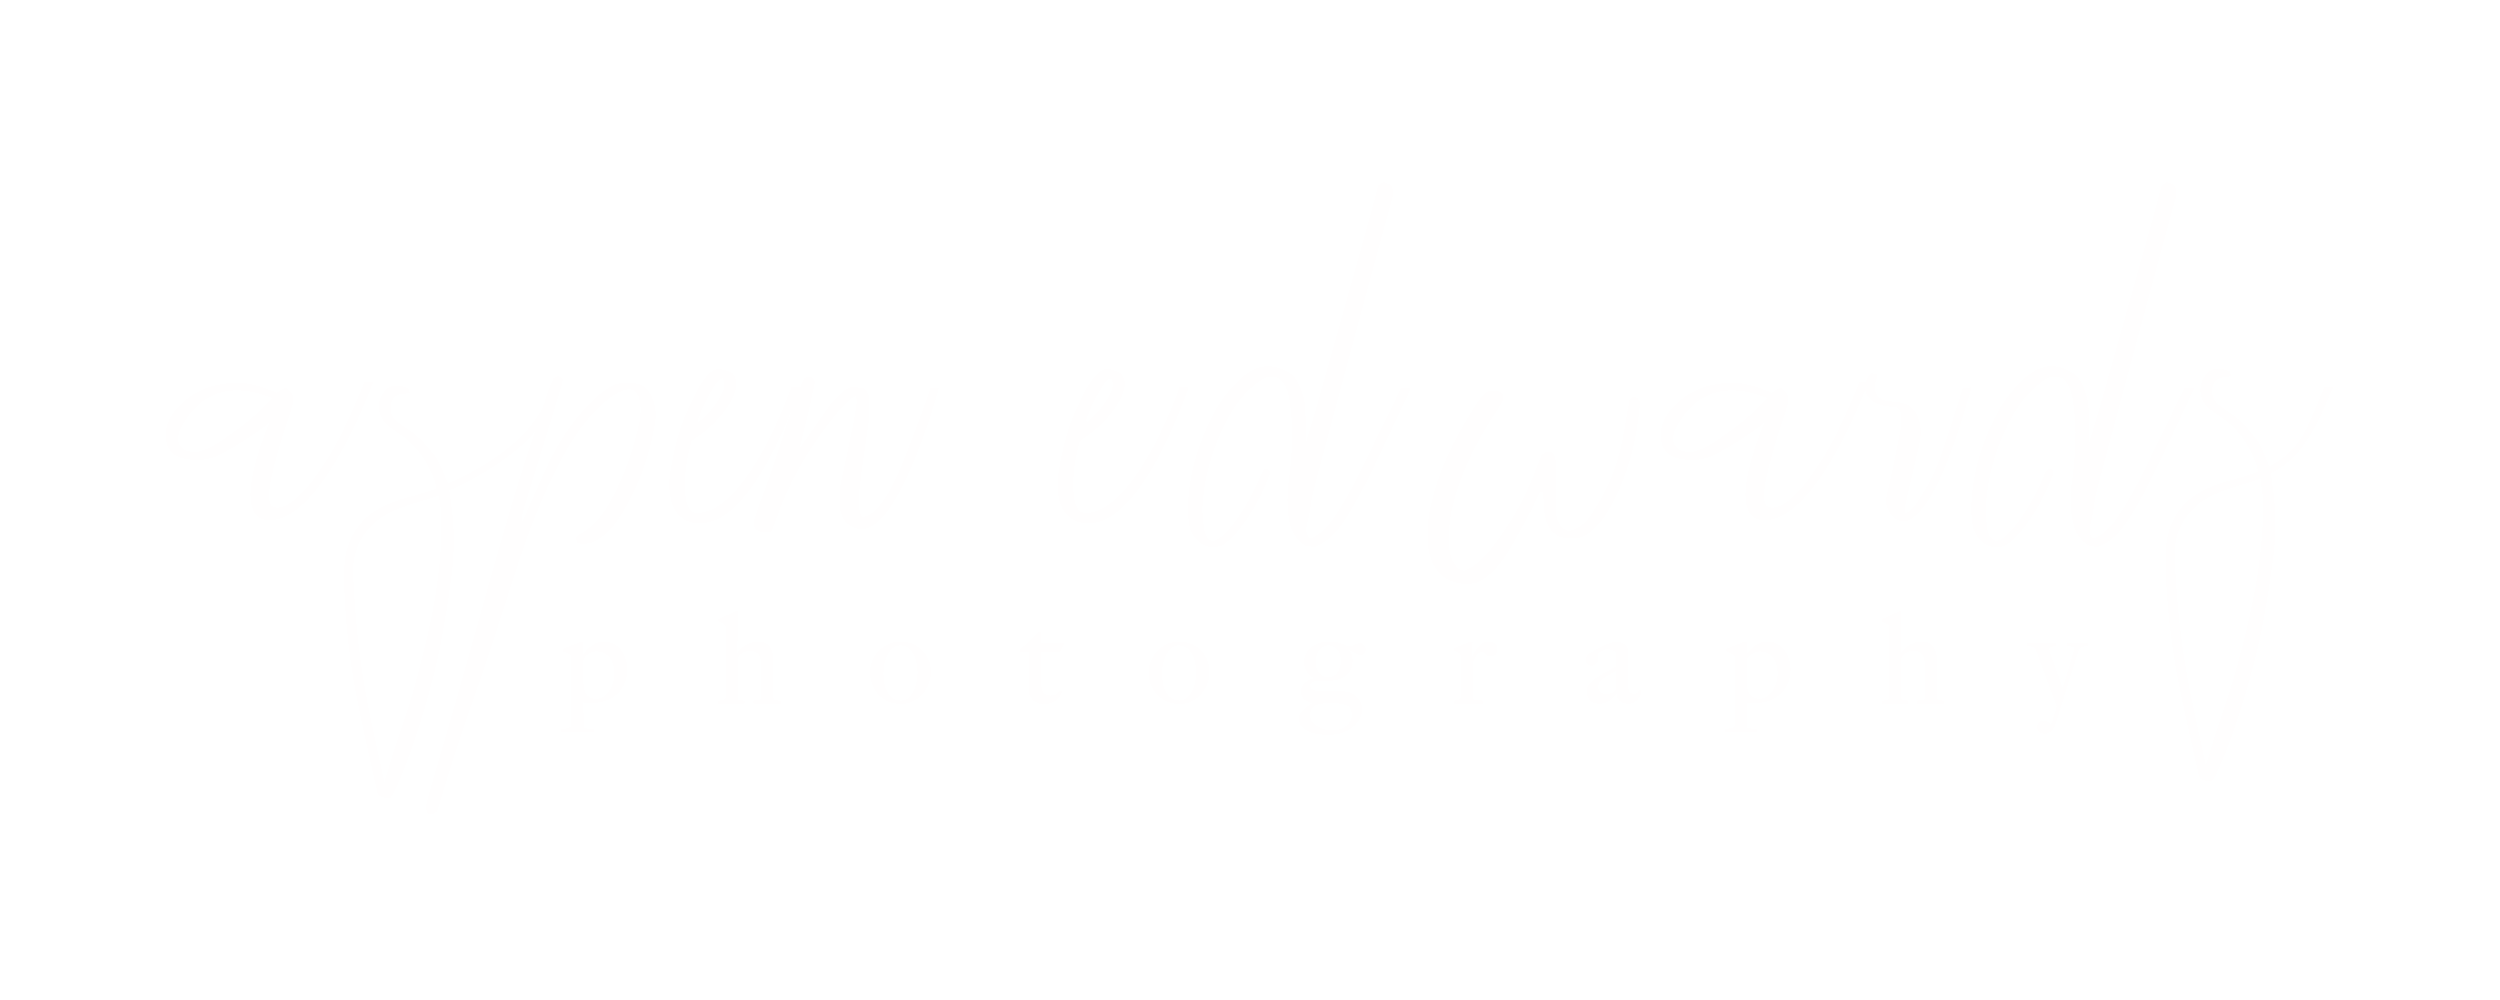 Aspen Edwards Photography